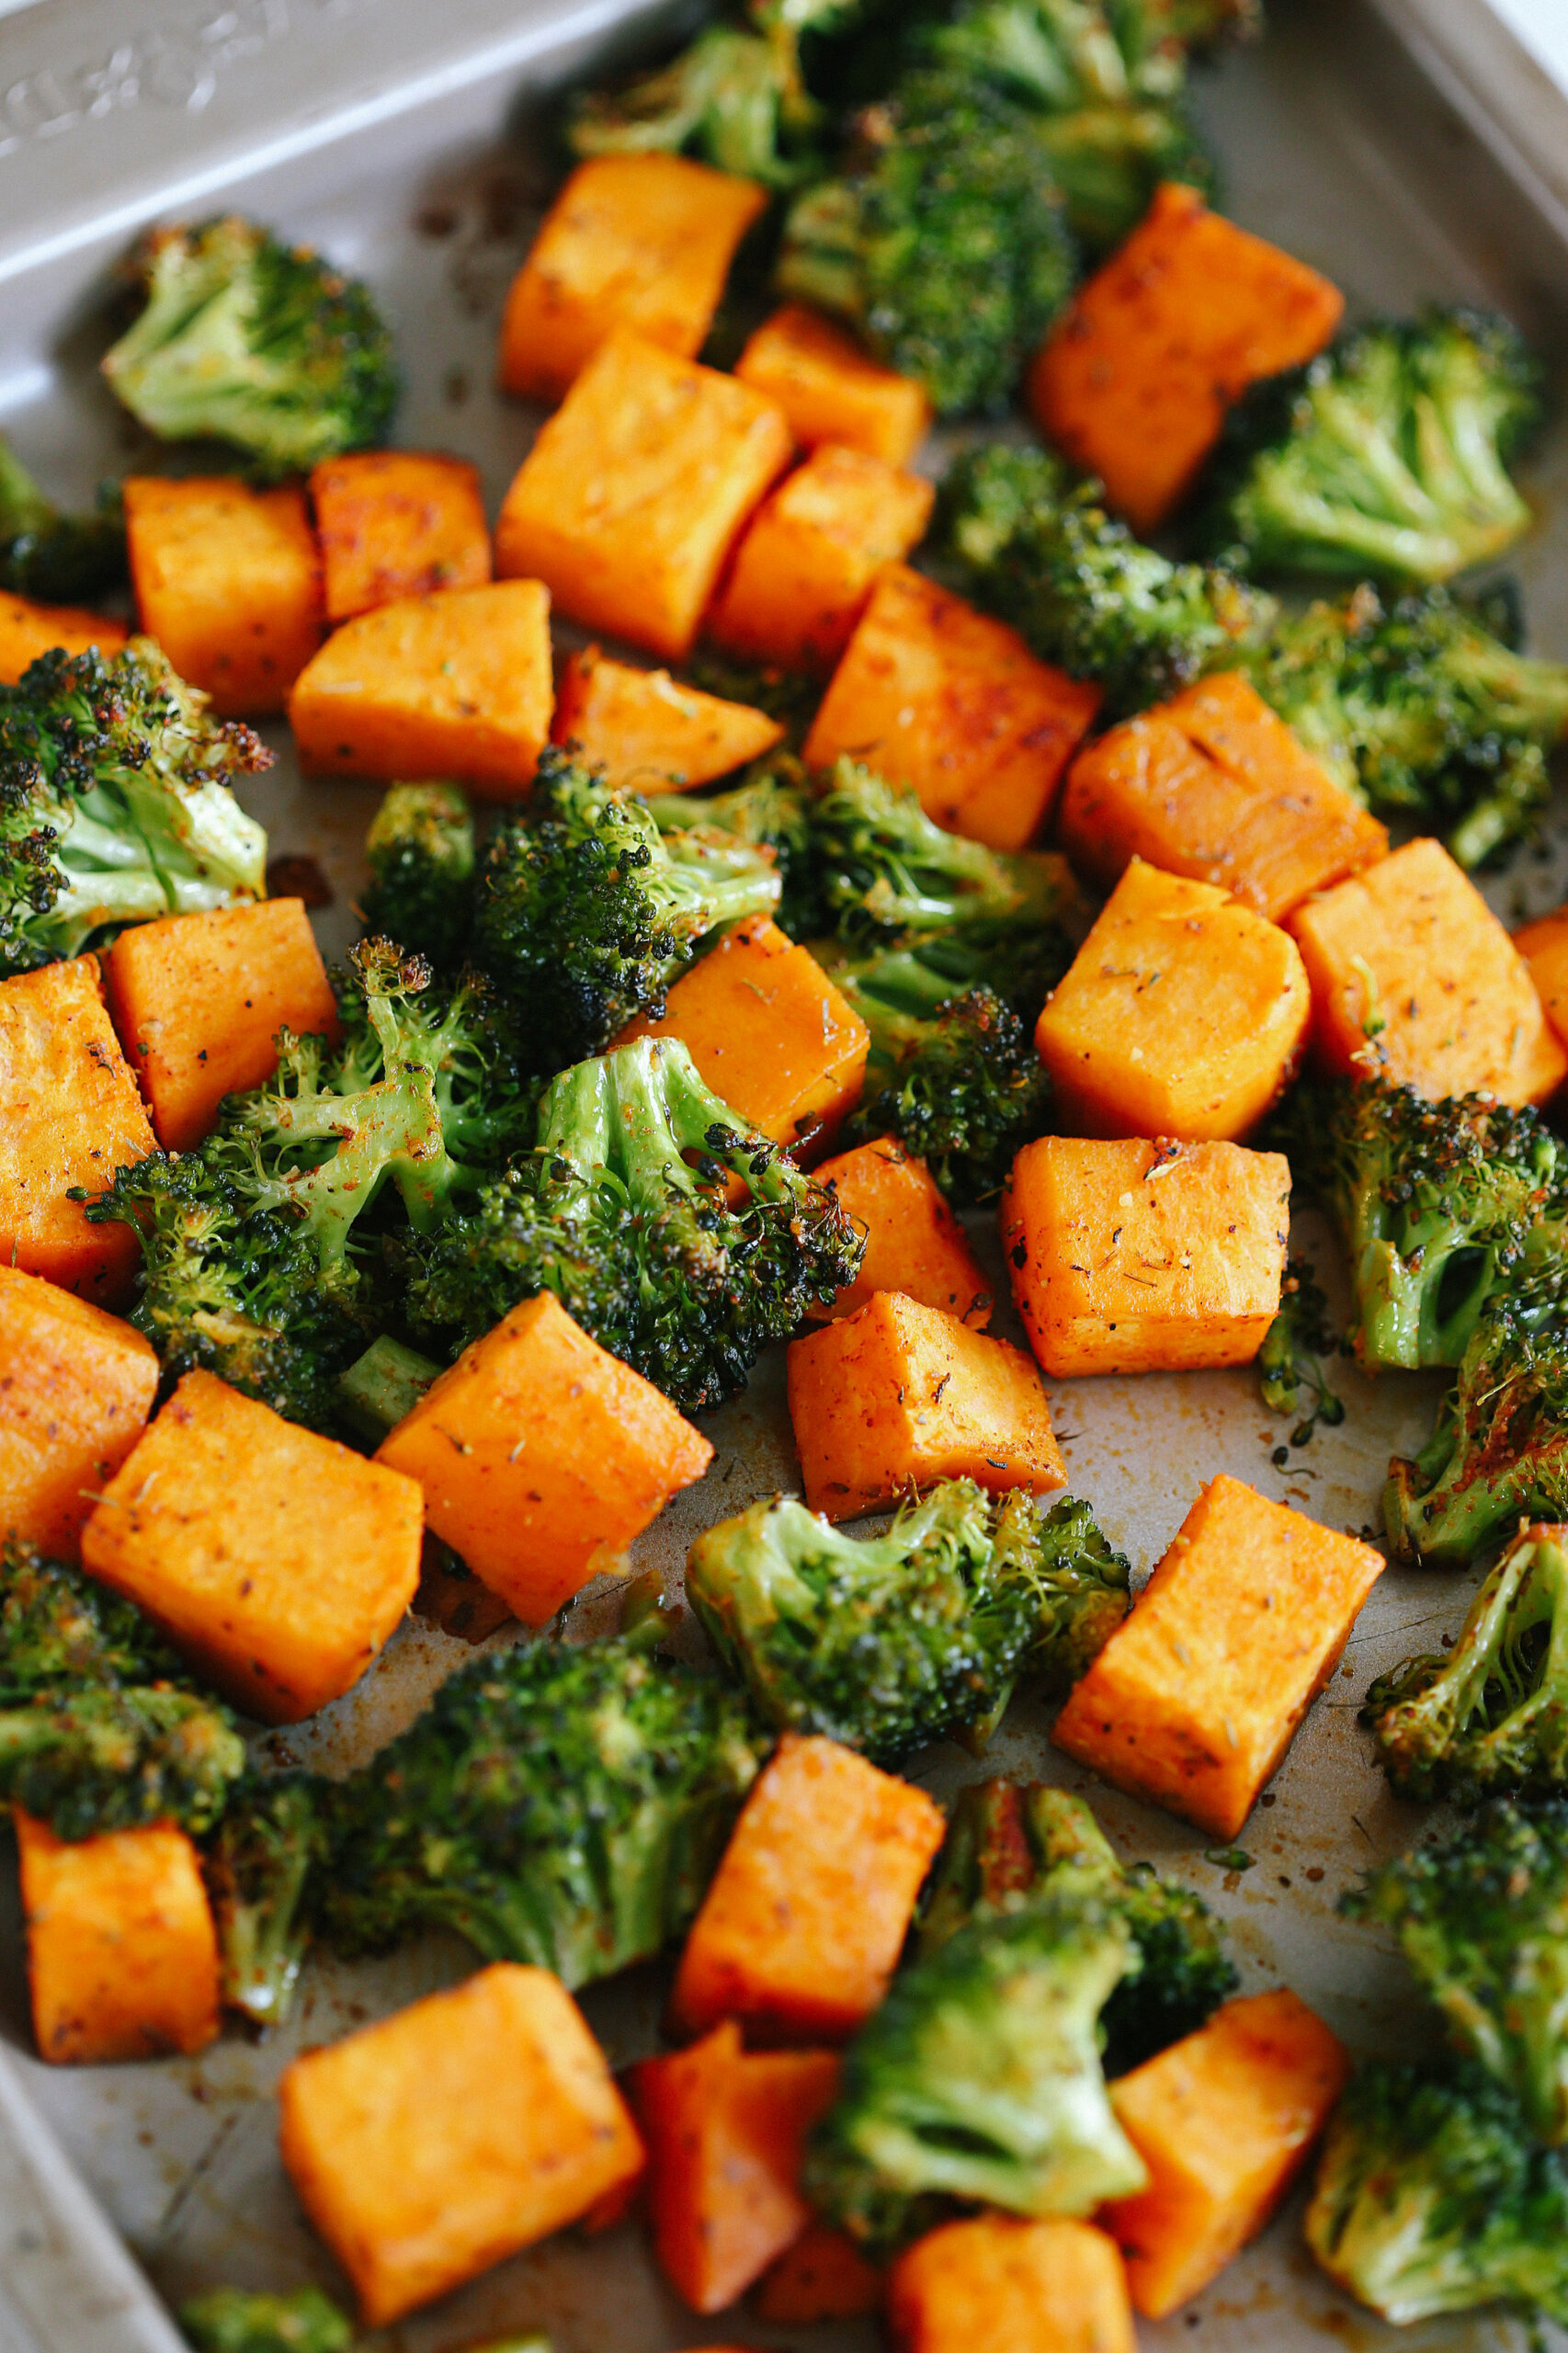 Perfectly Roasted Broccoli & Sweet Potatoes - Eat Yourself ..